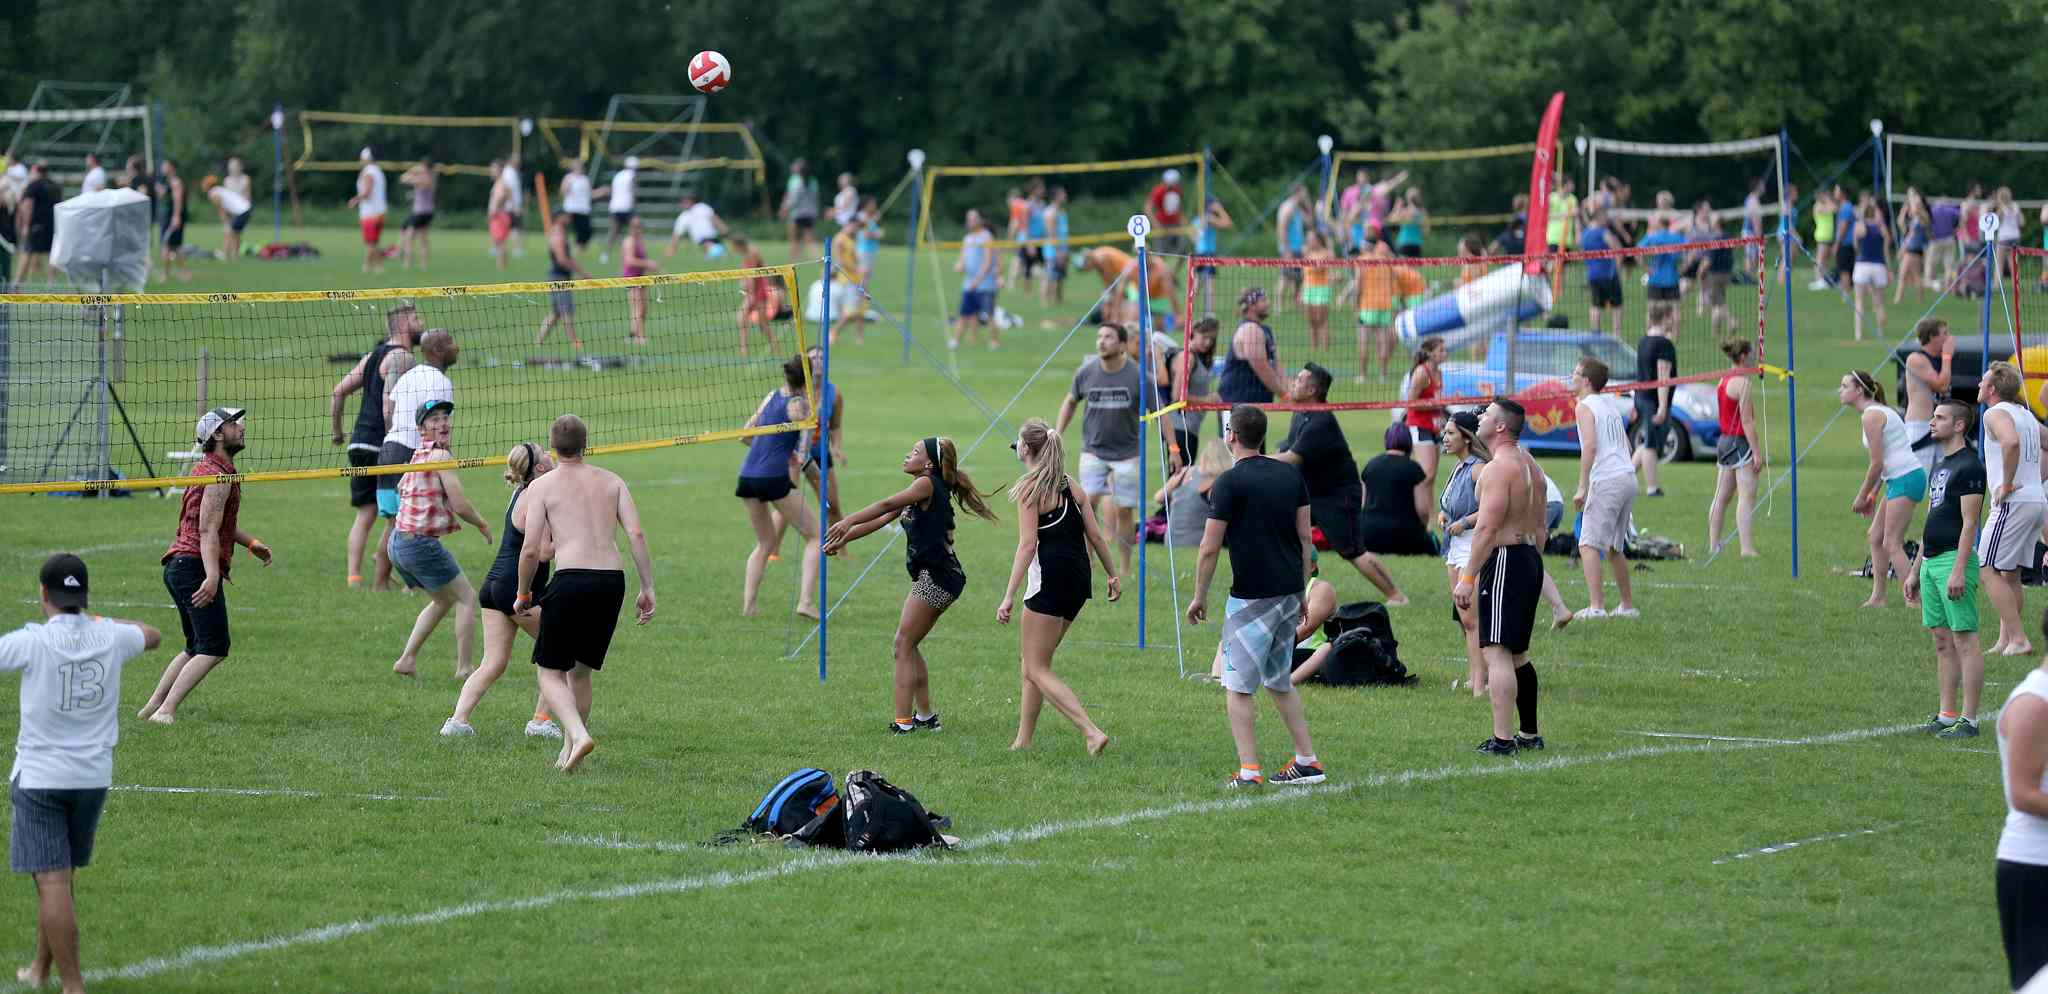 The Super-Spike volleyball tournament at Maple Grove Rugby Park, Friday, July 18, 2014.